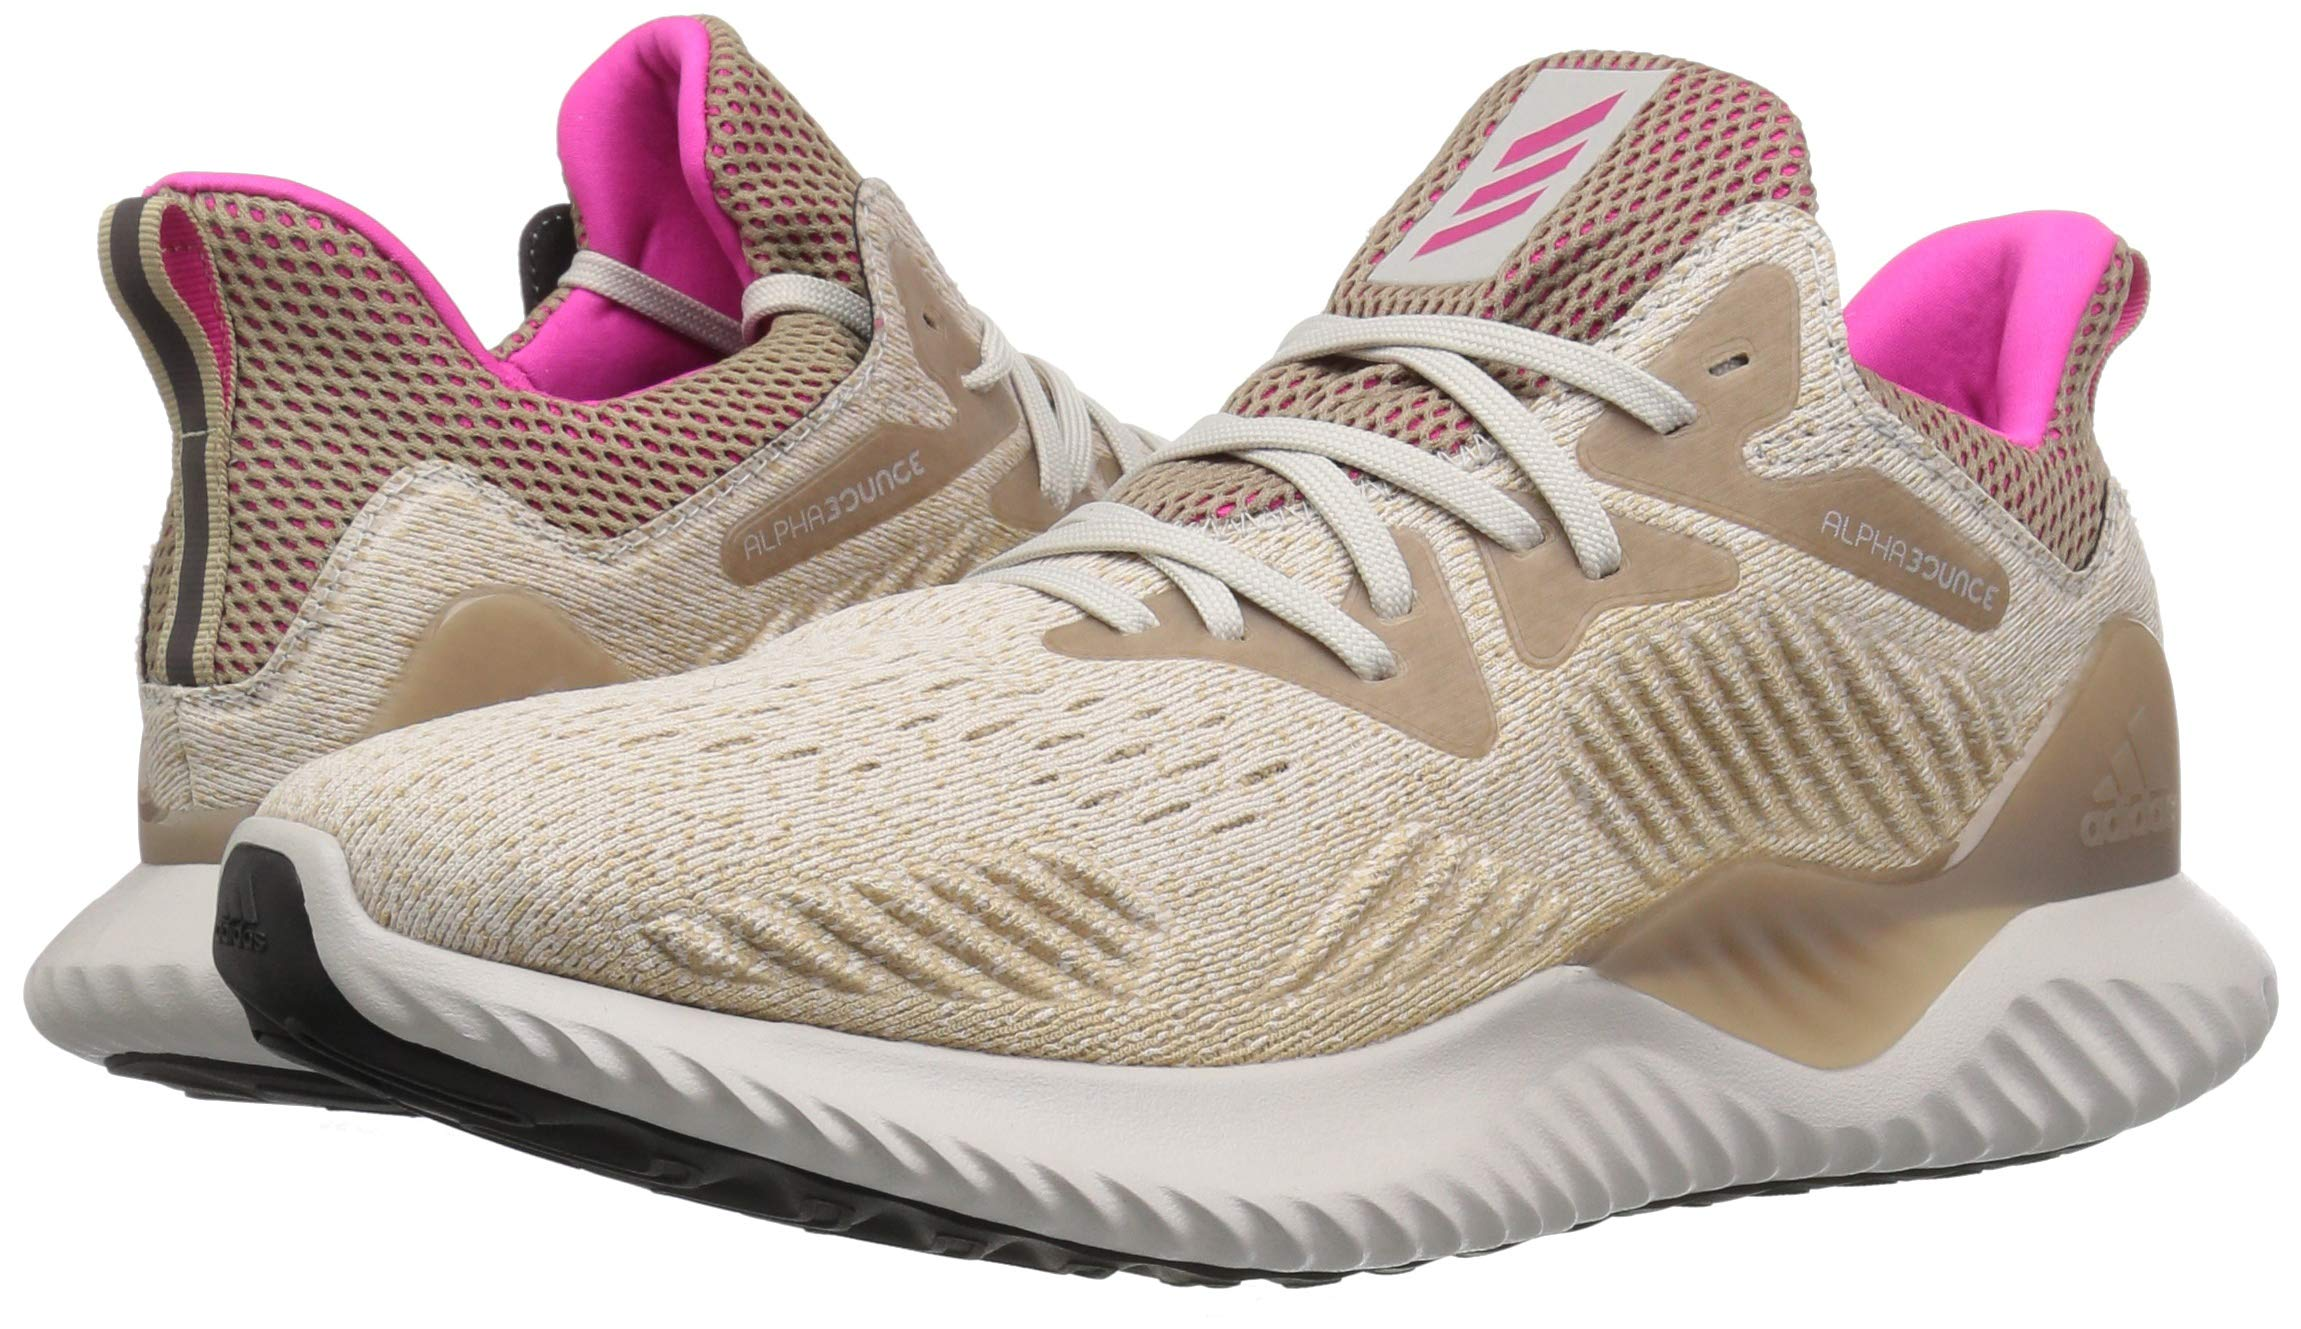 adidas Men's Alphabounce Beyond Running Shoe, Chalk Pearl/Shock Pink/Trace Khaki, 7.5 M US by adidas (Image #6)